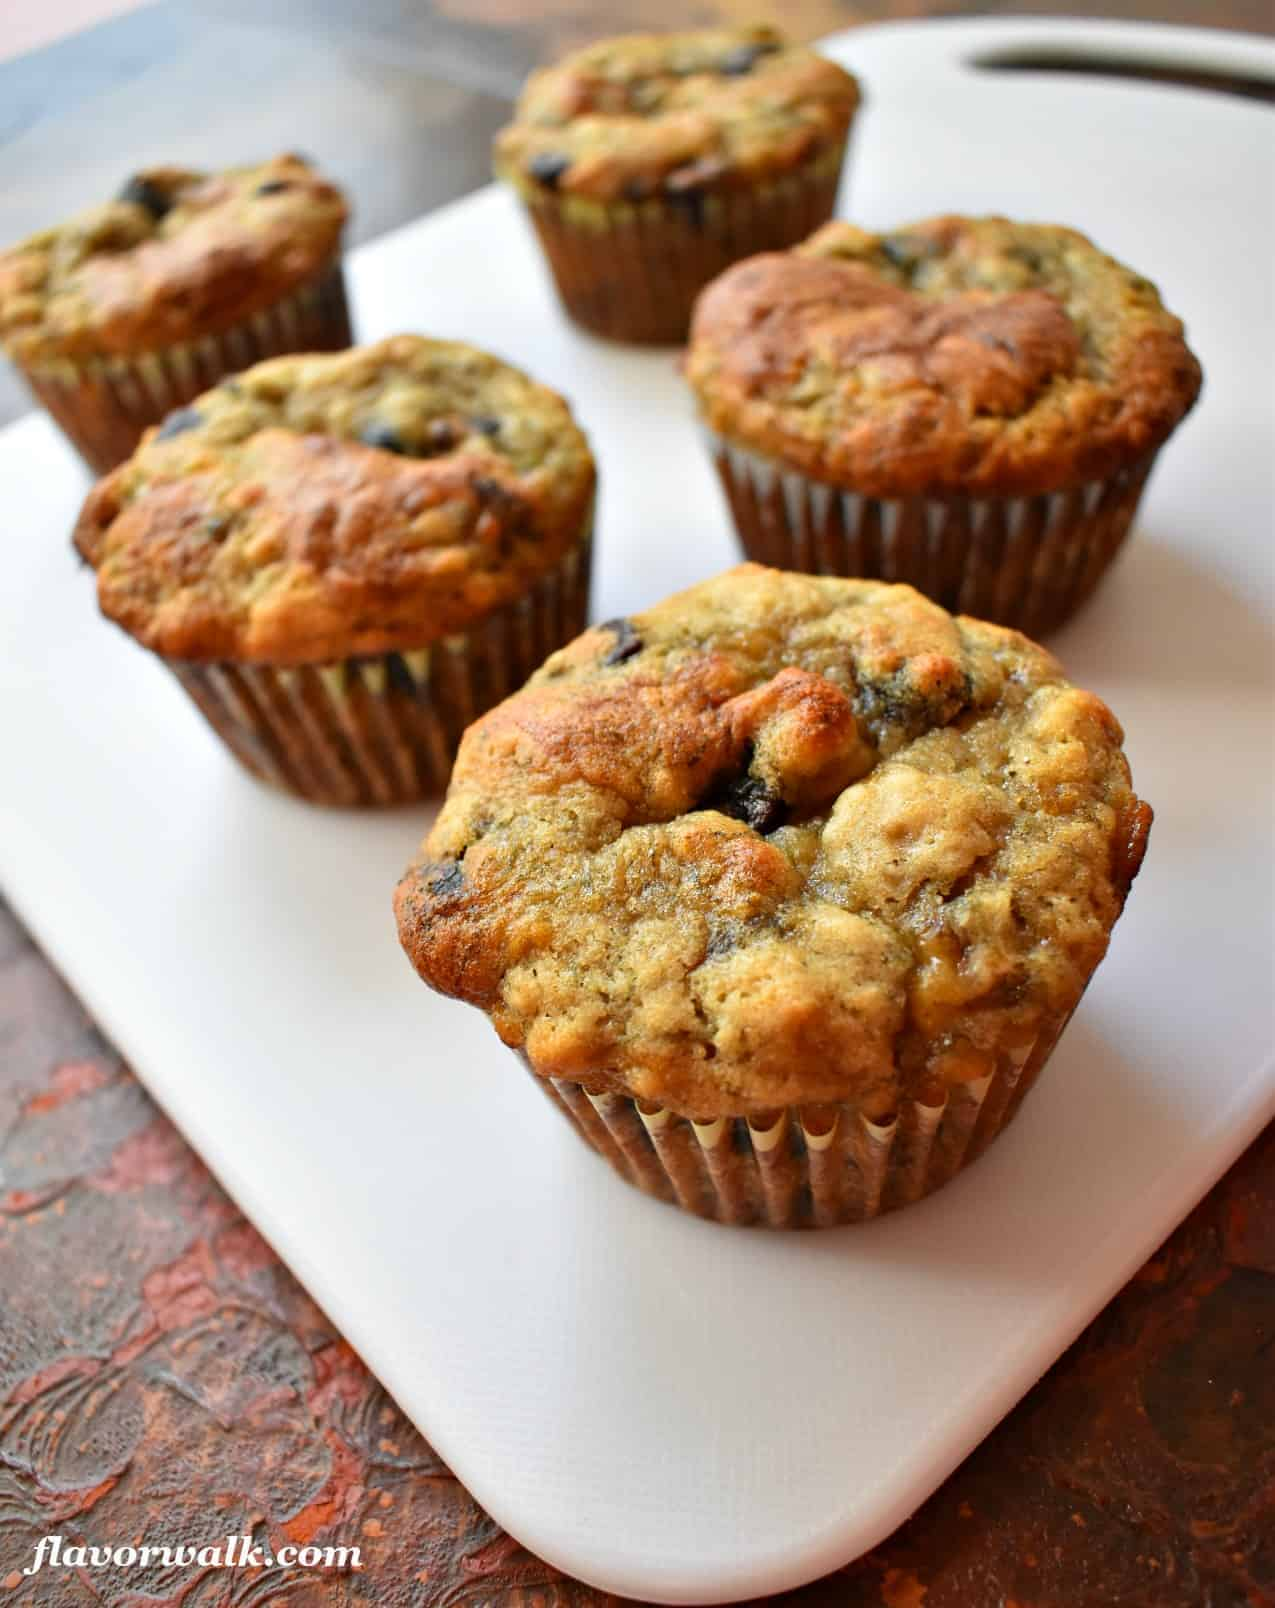 Gluten Free Chocolate Chip Banana Muffins are moist, tender and a terrific blend of chocolate and bananas!!